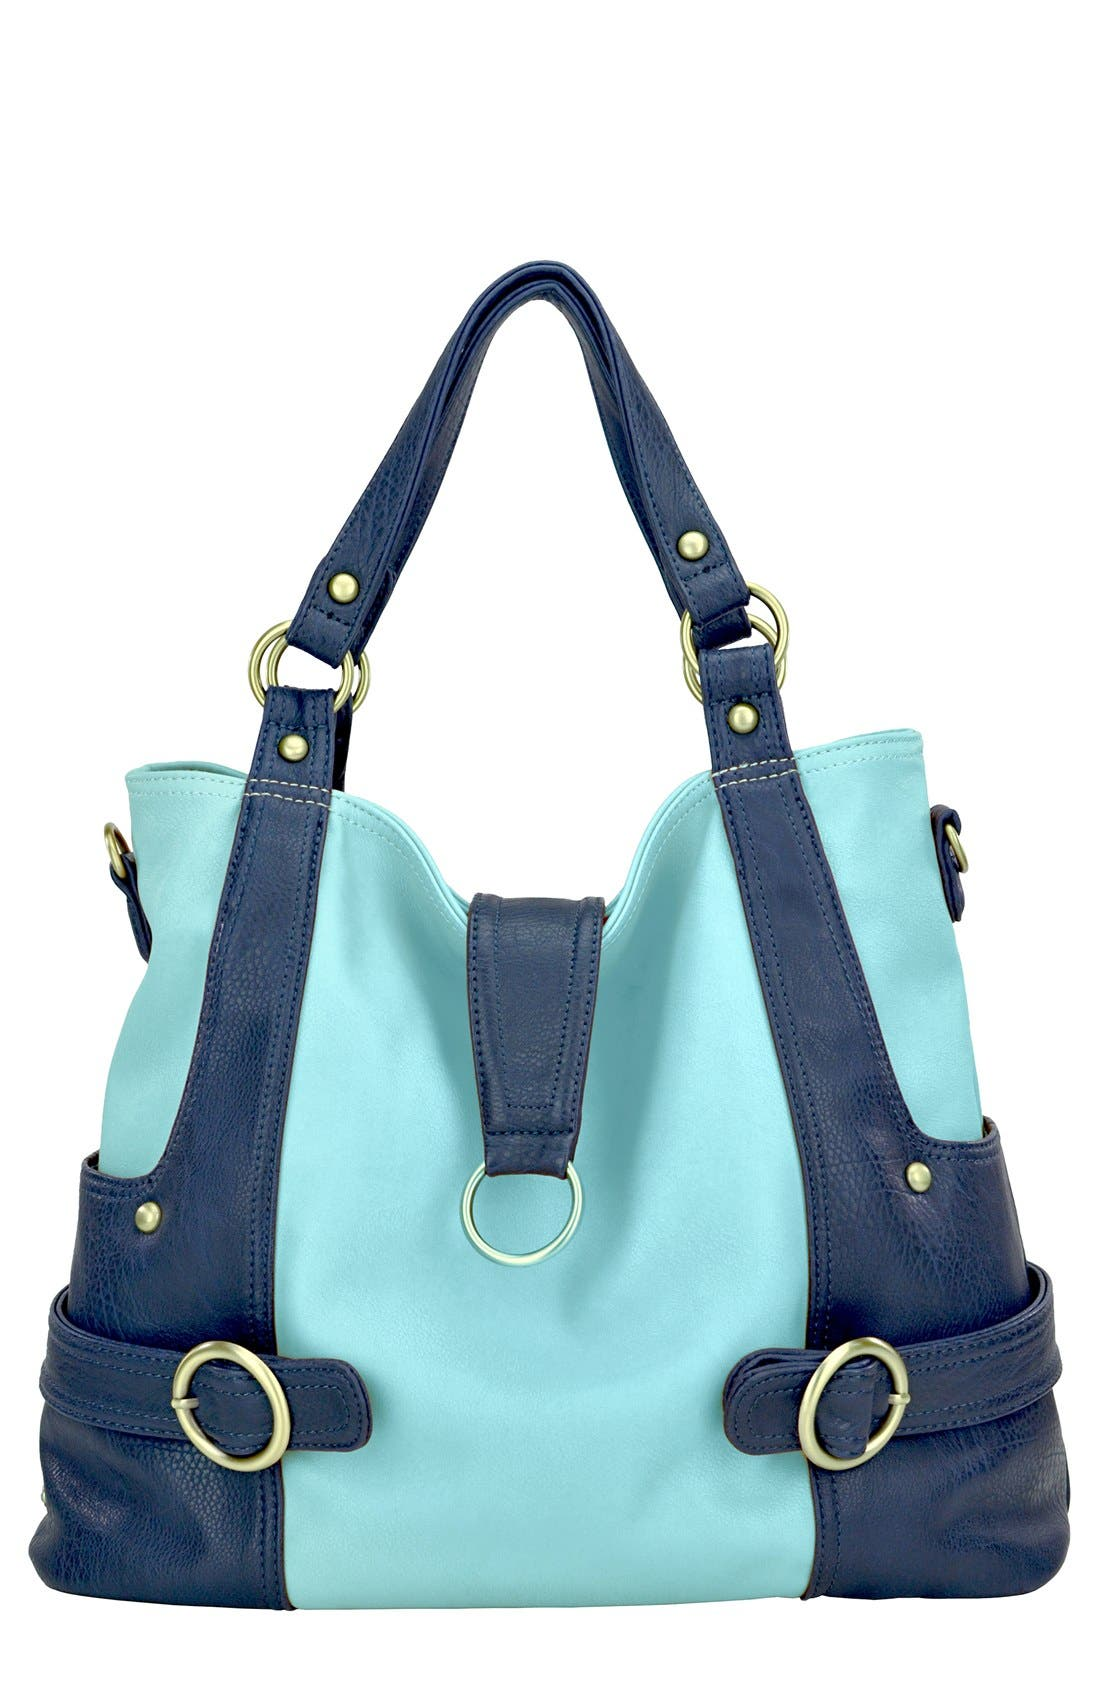 Alternate Image 1 Selected - Timi & Leslie 'Hannah' Faux Leather Diaper Bag